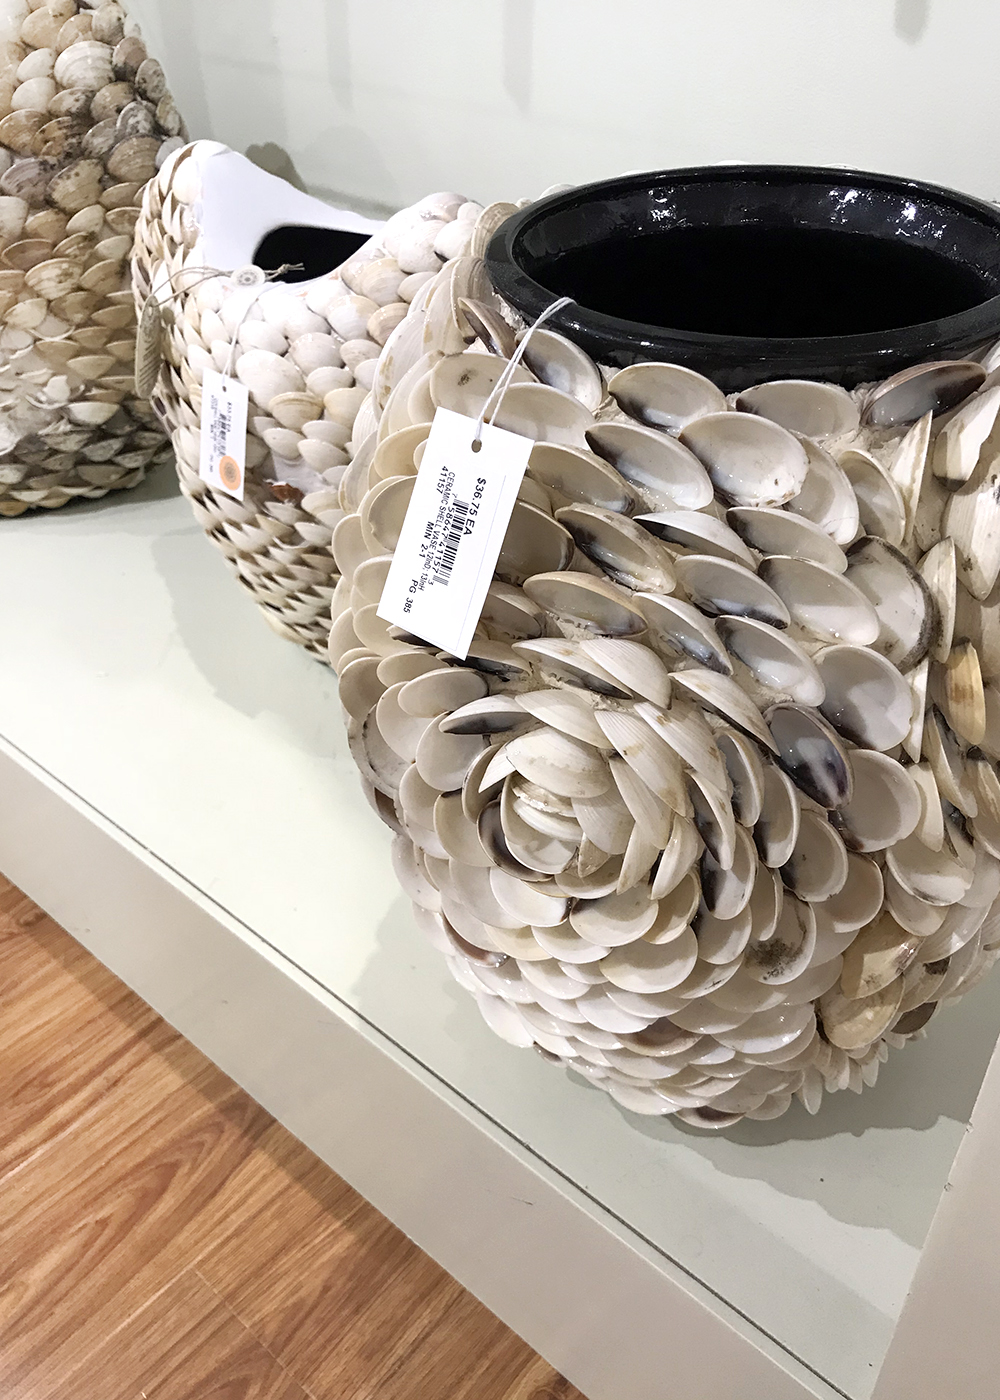 Ocean Inspired: Favorite Trends Spotted at the High Point Market